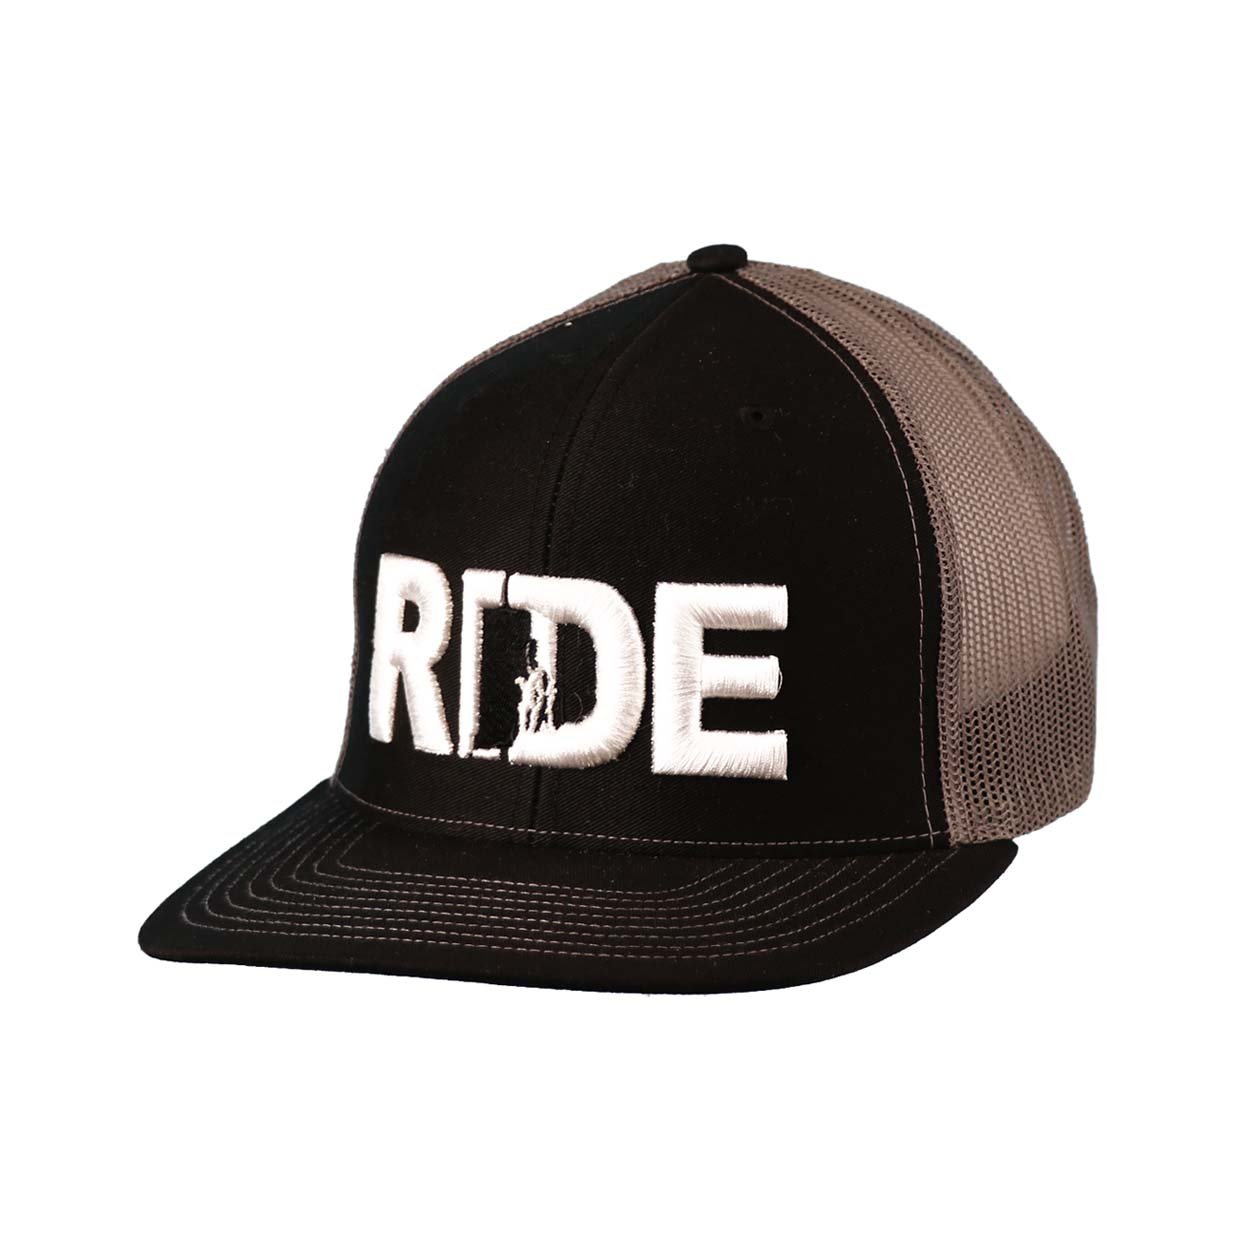 Ride Rhode Island Classic Embroidered Snapback Trucker Hat Black/White